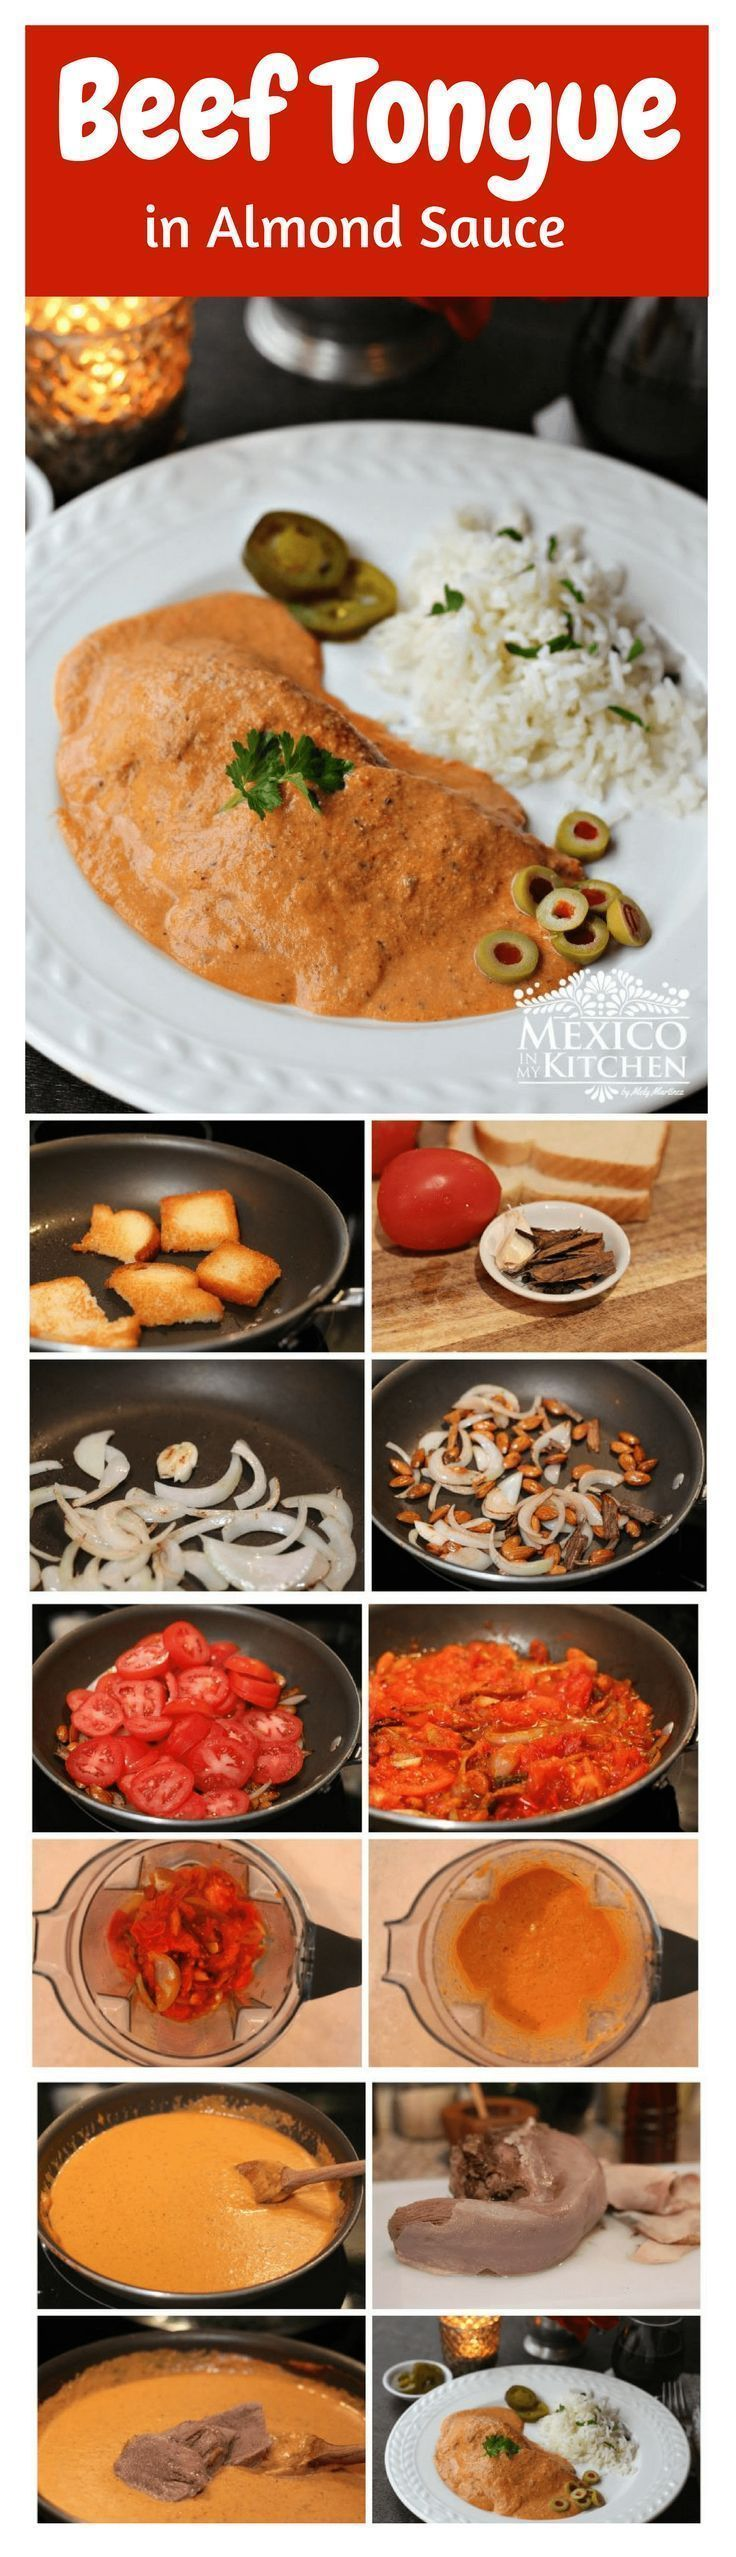 46 best Mexico in My Kitchen Recipes images on Pinterest ...